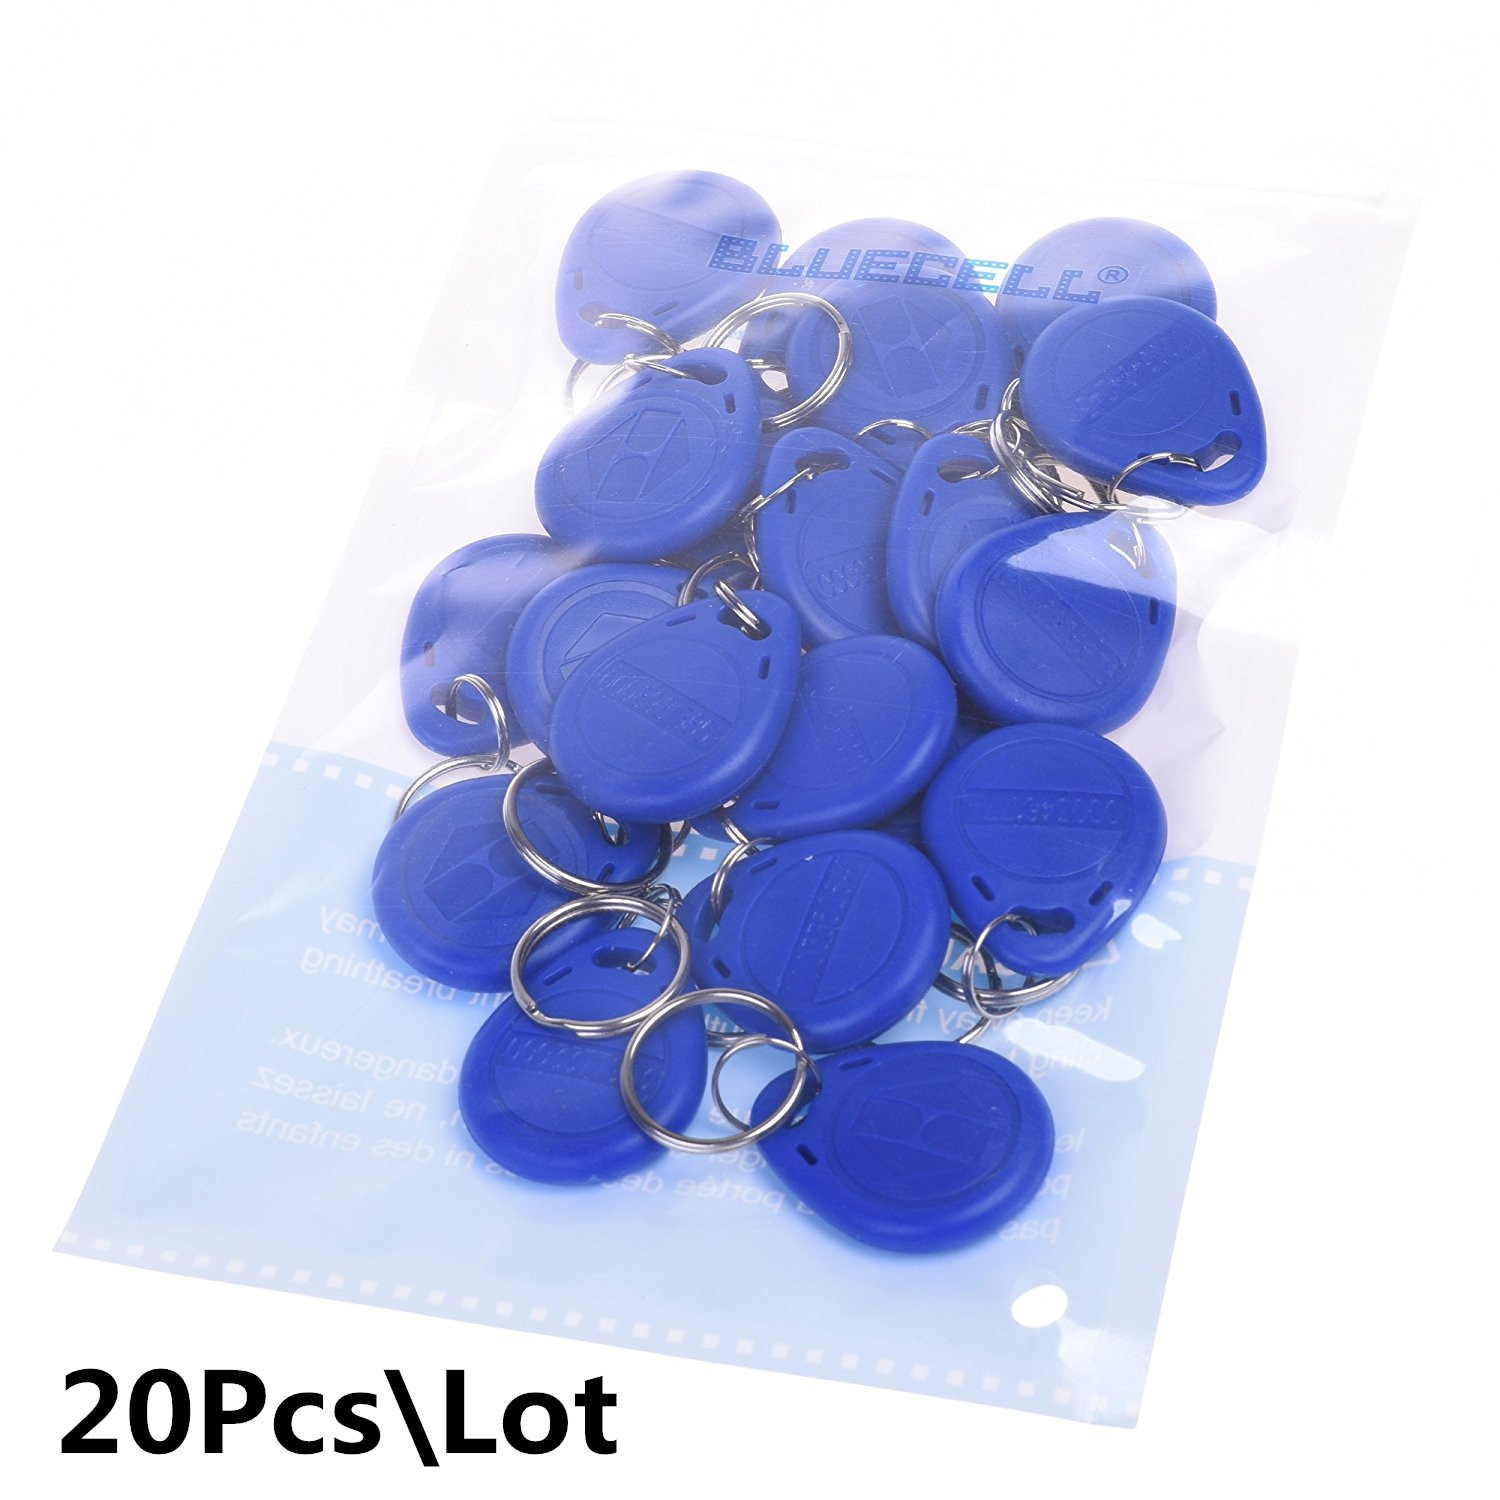 20Pcs/Lot 125khz Wholesale New Rfid Proximity ID Card Token Tags Key Keyfobs Blue Door Access Control Time Attendance Hotel 10pcs access control rfid keyfobs 125khz proximity id token tag key keyfobs blue color for door access control system f1661a